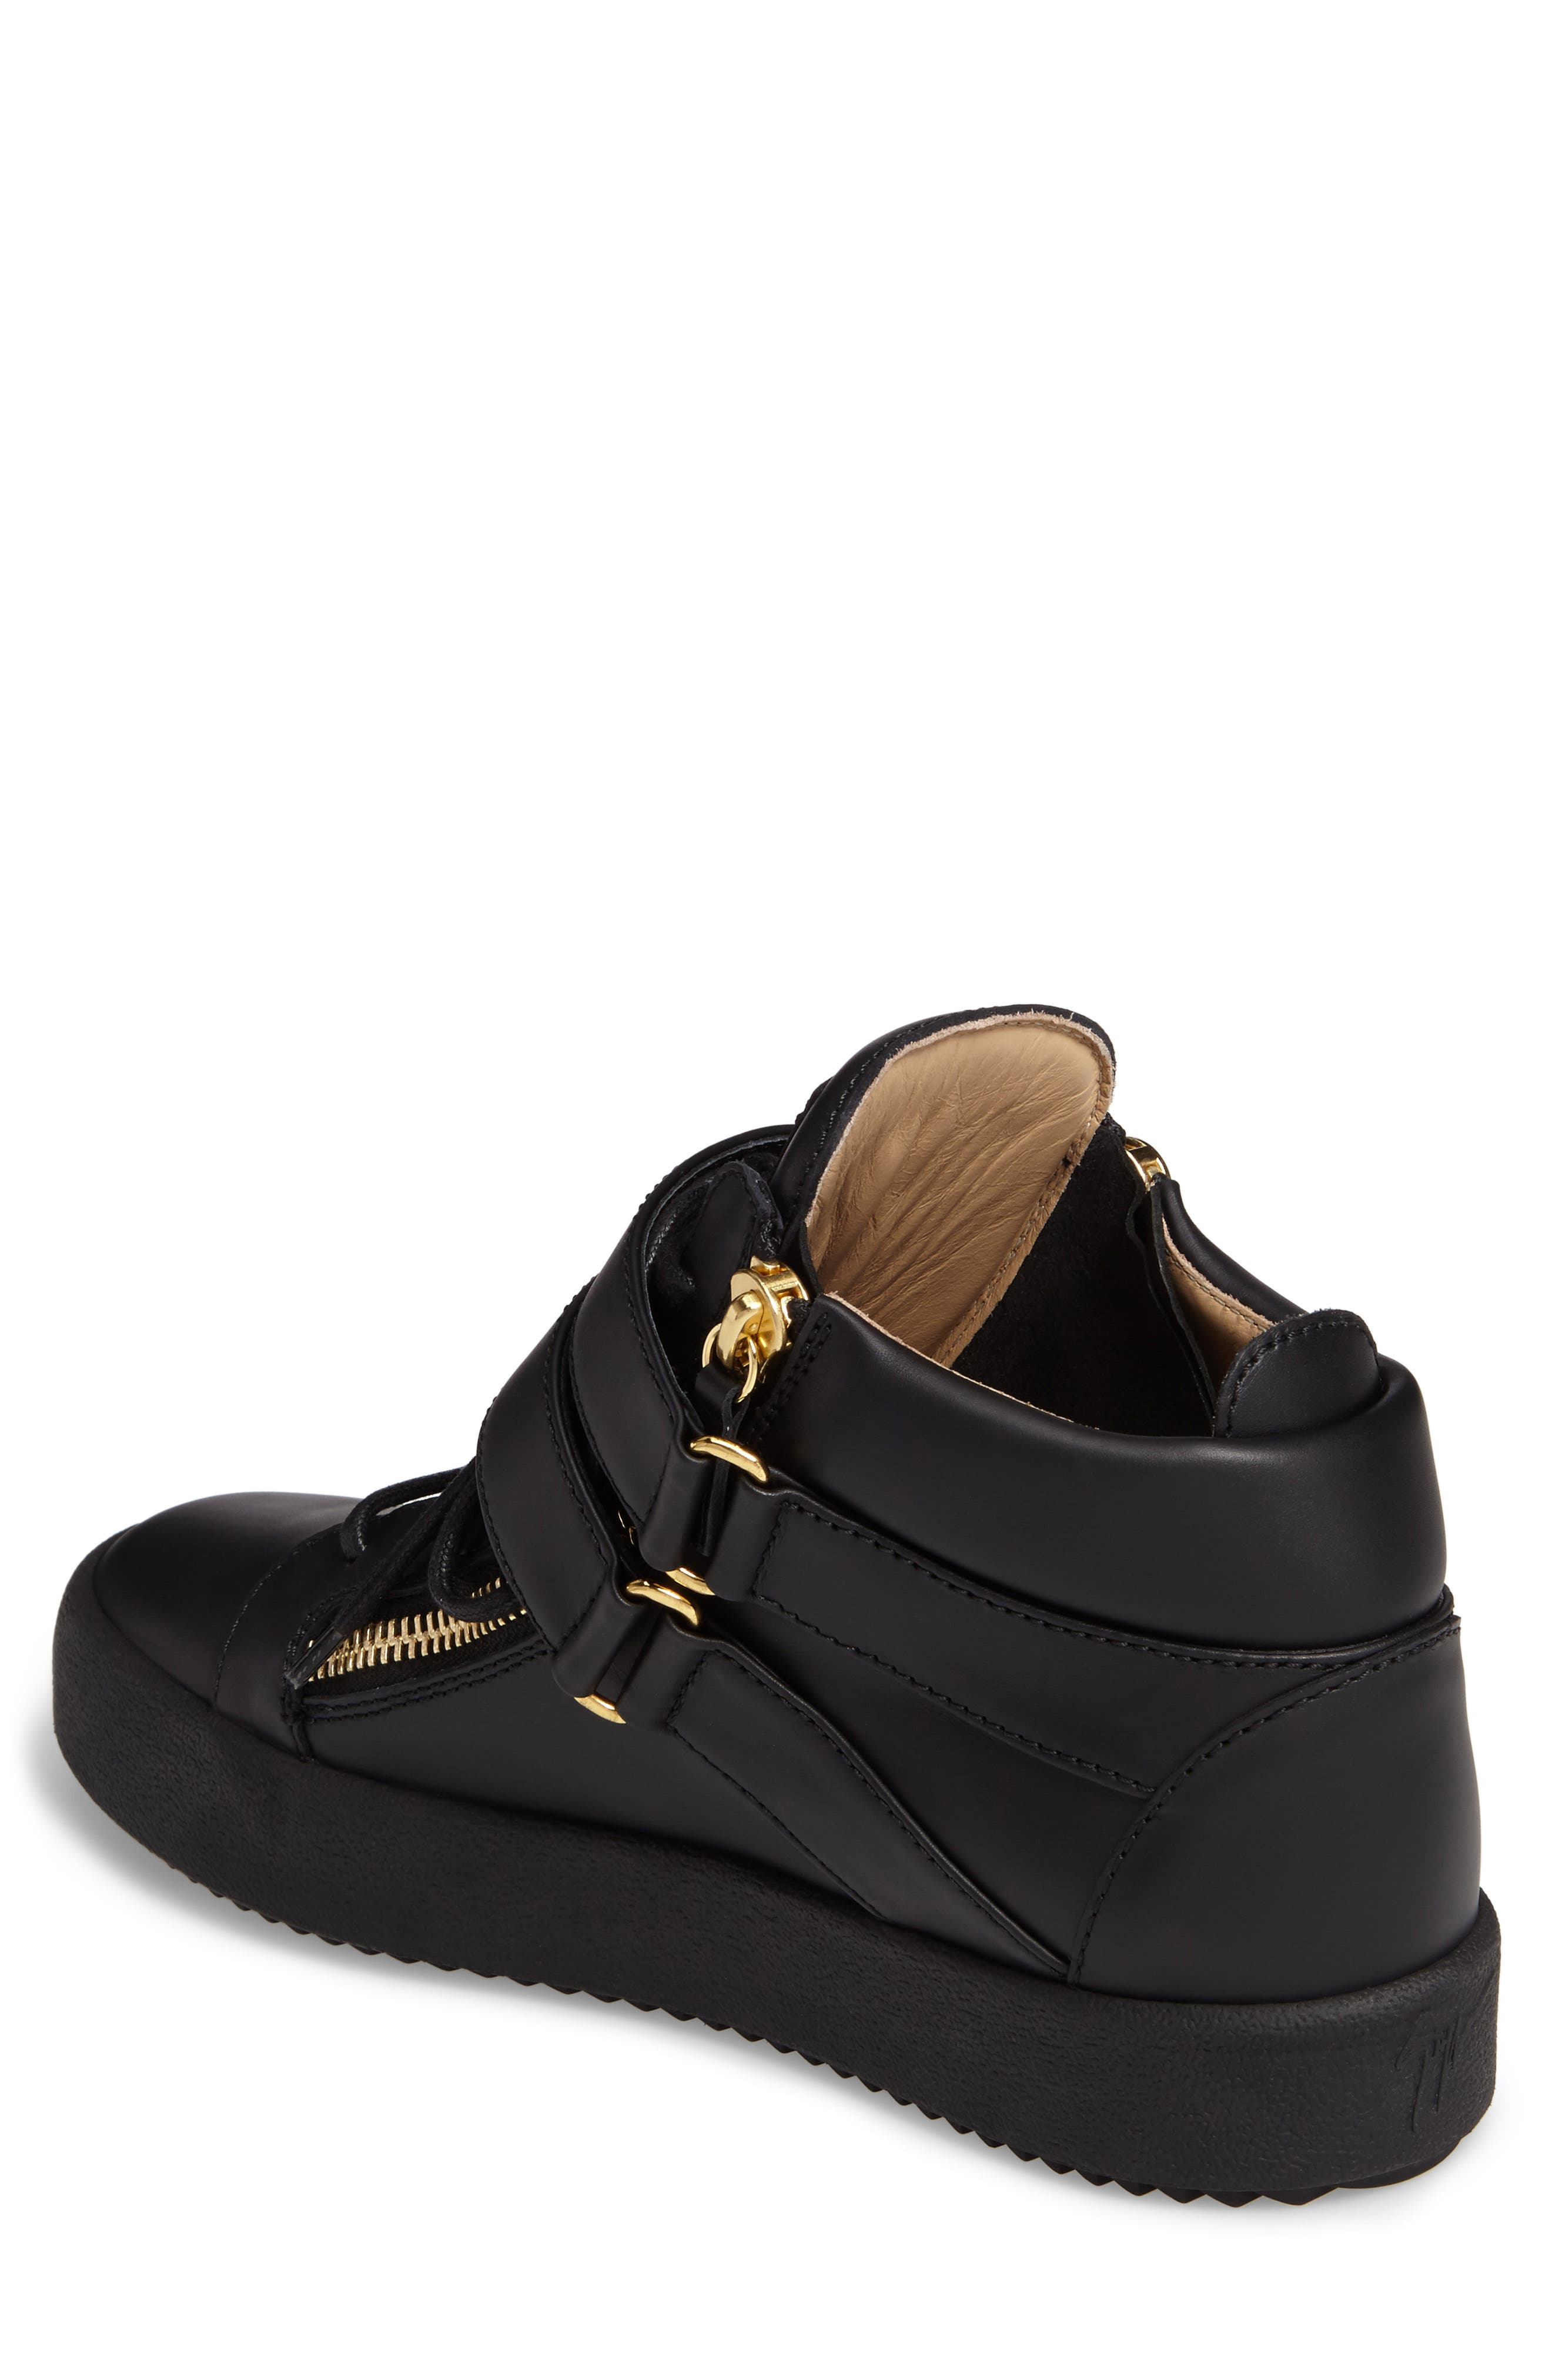 Gold Horn Mid Top Sneaker,                             Alternate thumbnail 2, color,